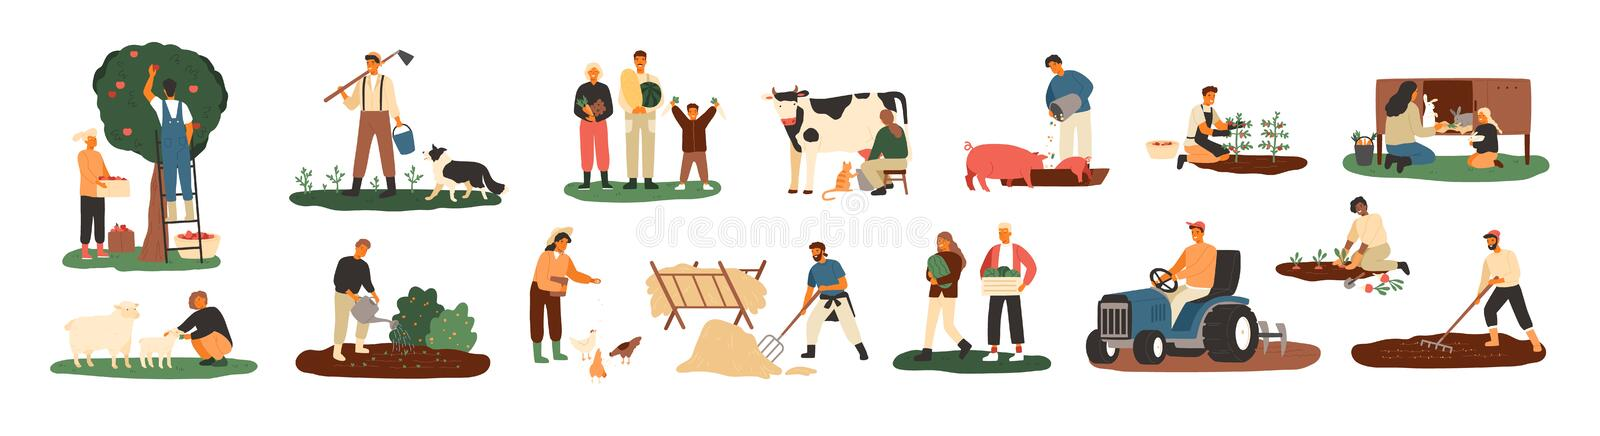 Set of farmers or agricultural workers planting crops, gathering harvest, collecting apples, feeding farm animals stock illustration